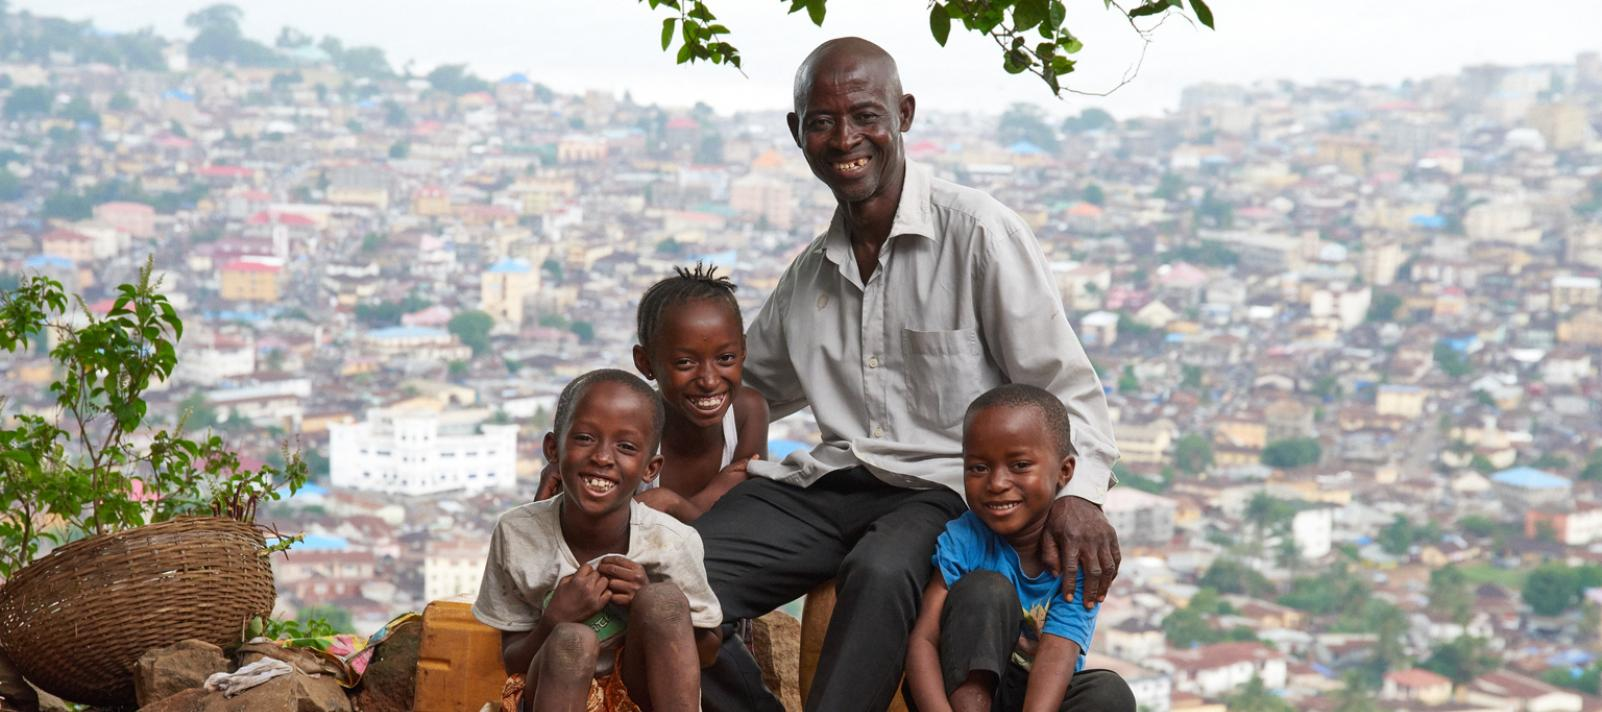 Sulaiman Samura with three of his children, from left, Fatmata, 10 years old, Kabba, 7 years old and Jonathan, 5 years old in the the suburb of Hilltop, Freetown, Sierra Leone on May 30, 2017.